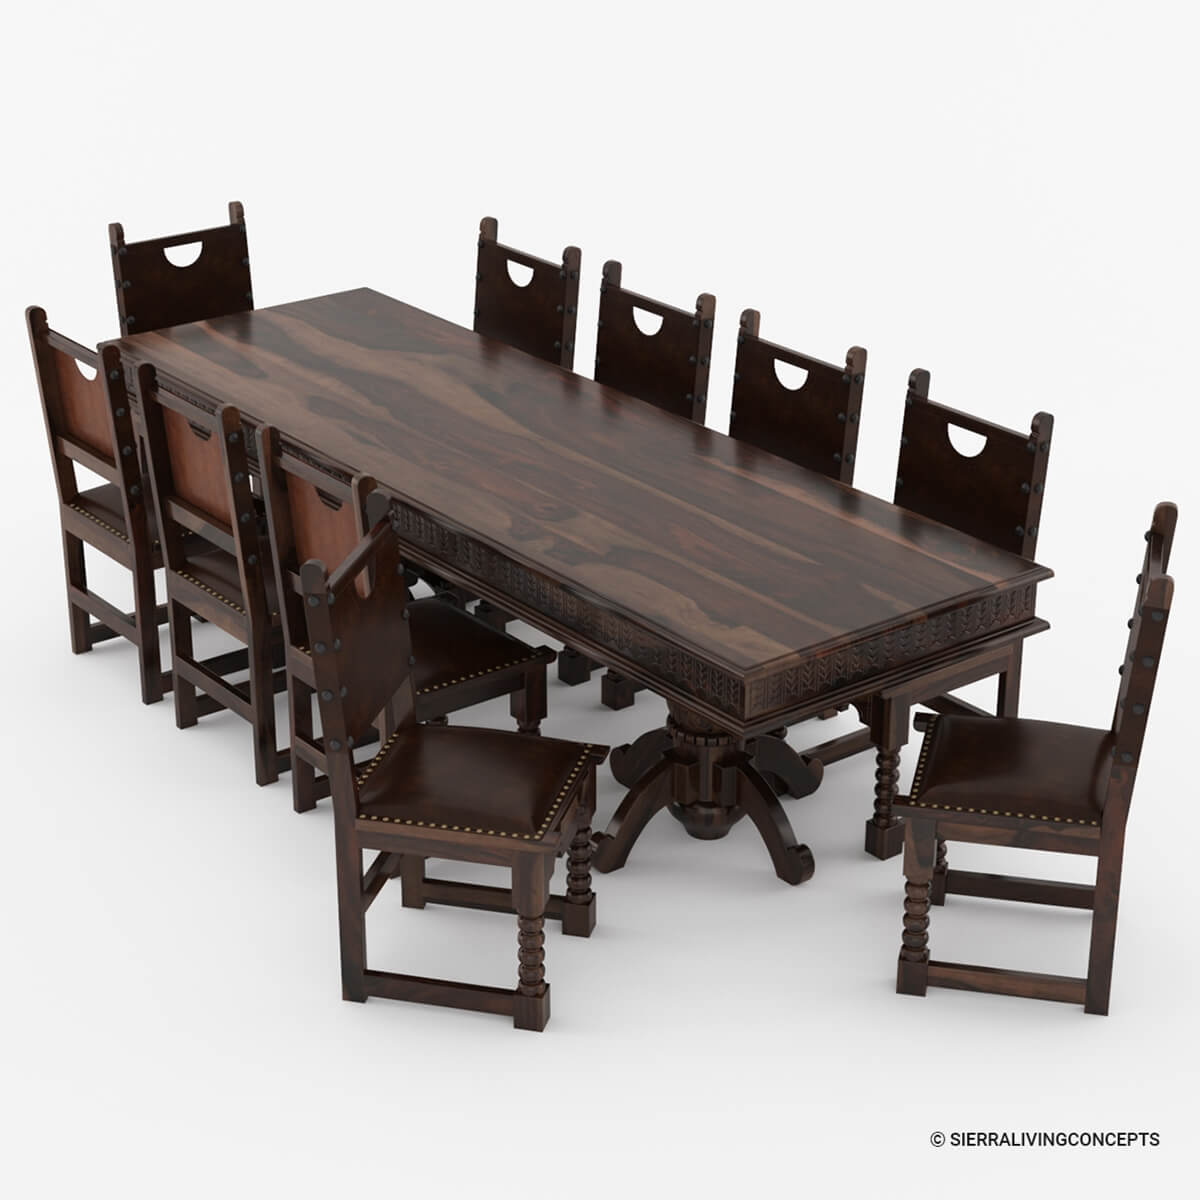 Nottingham solid wood large rustic dining room table chair set for Rustic dining room sets